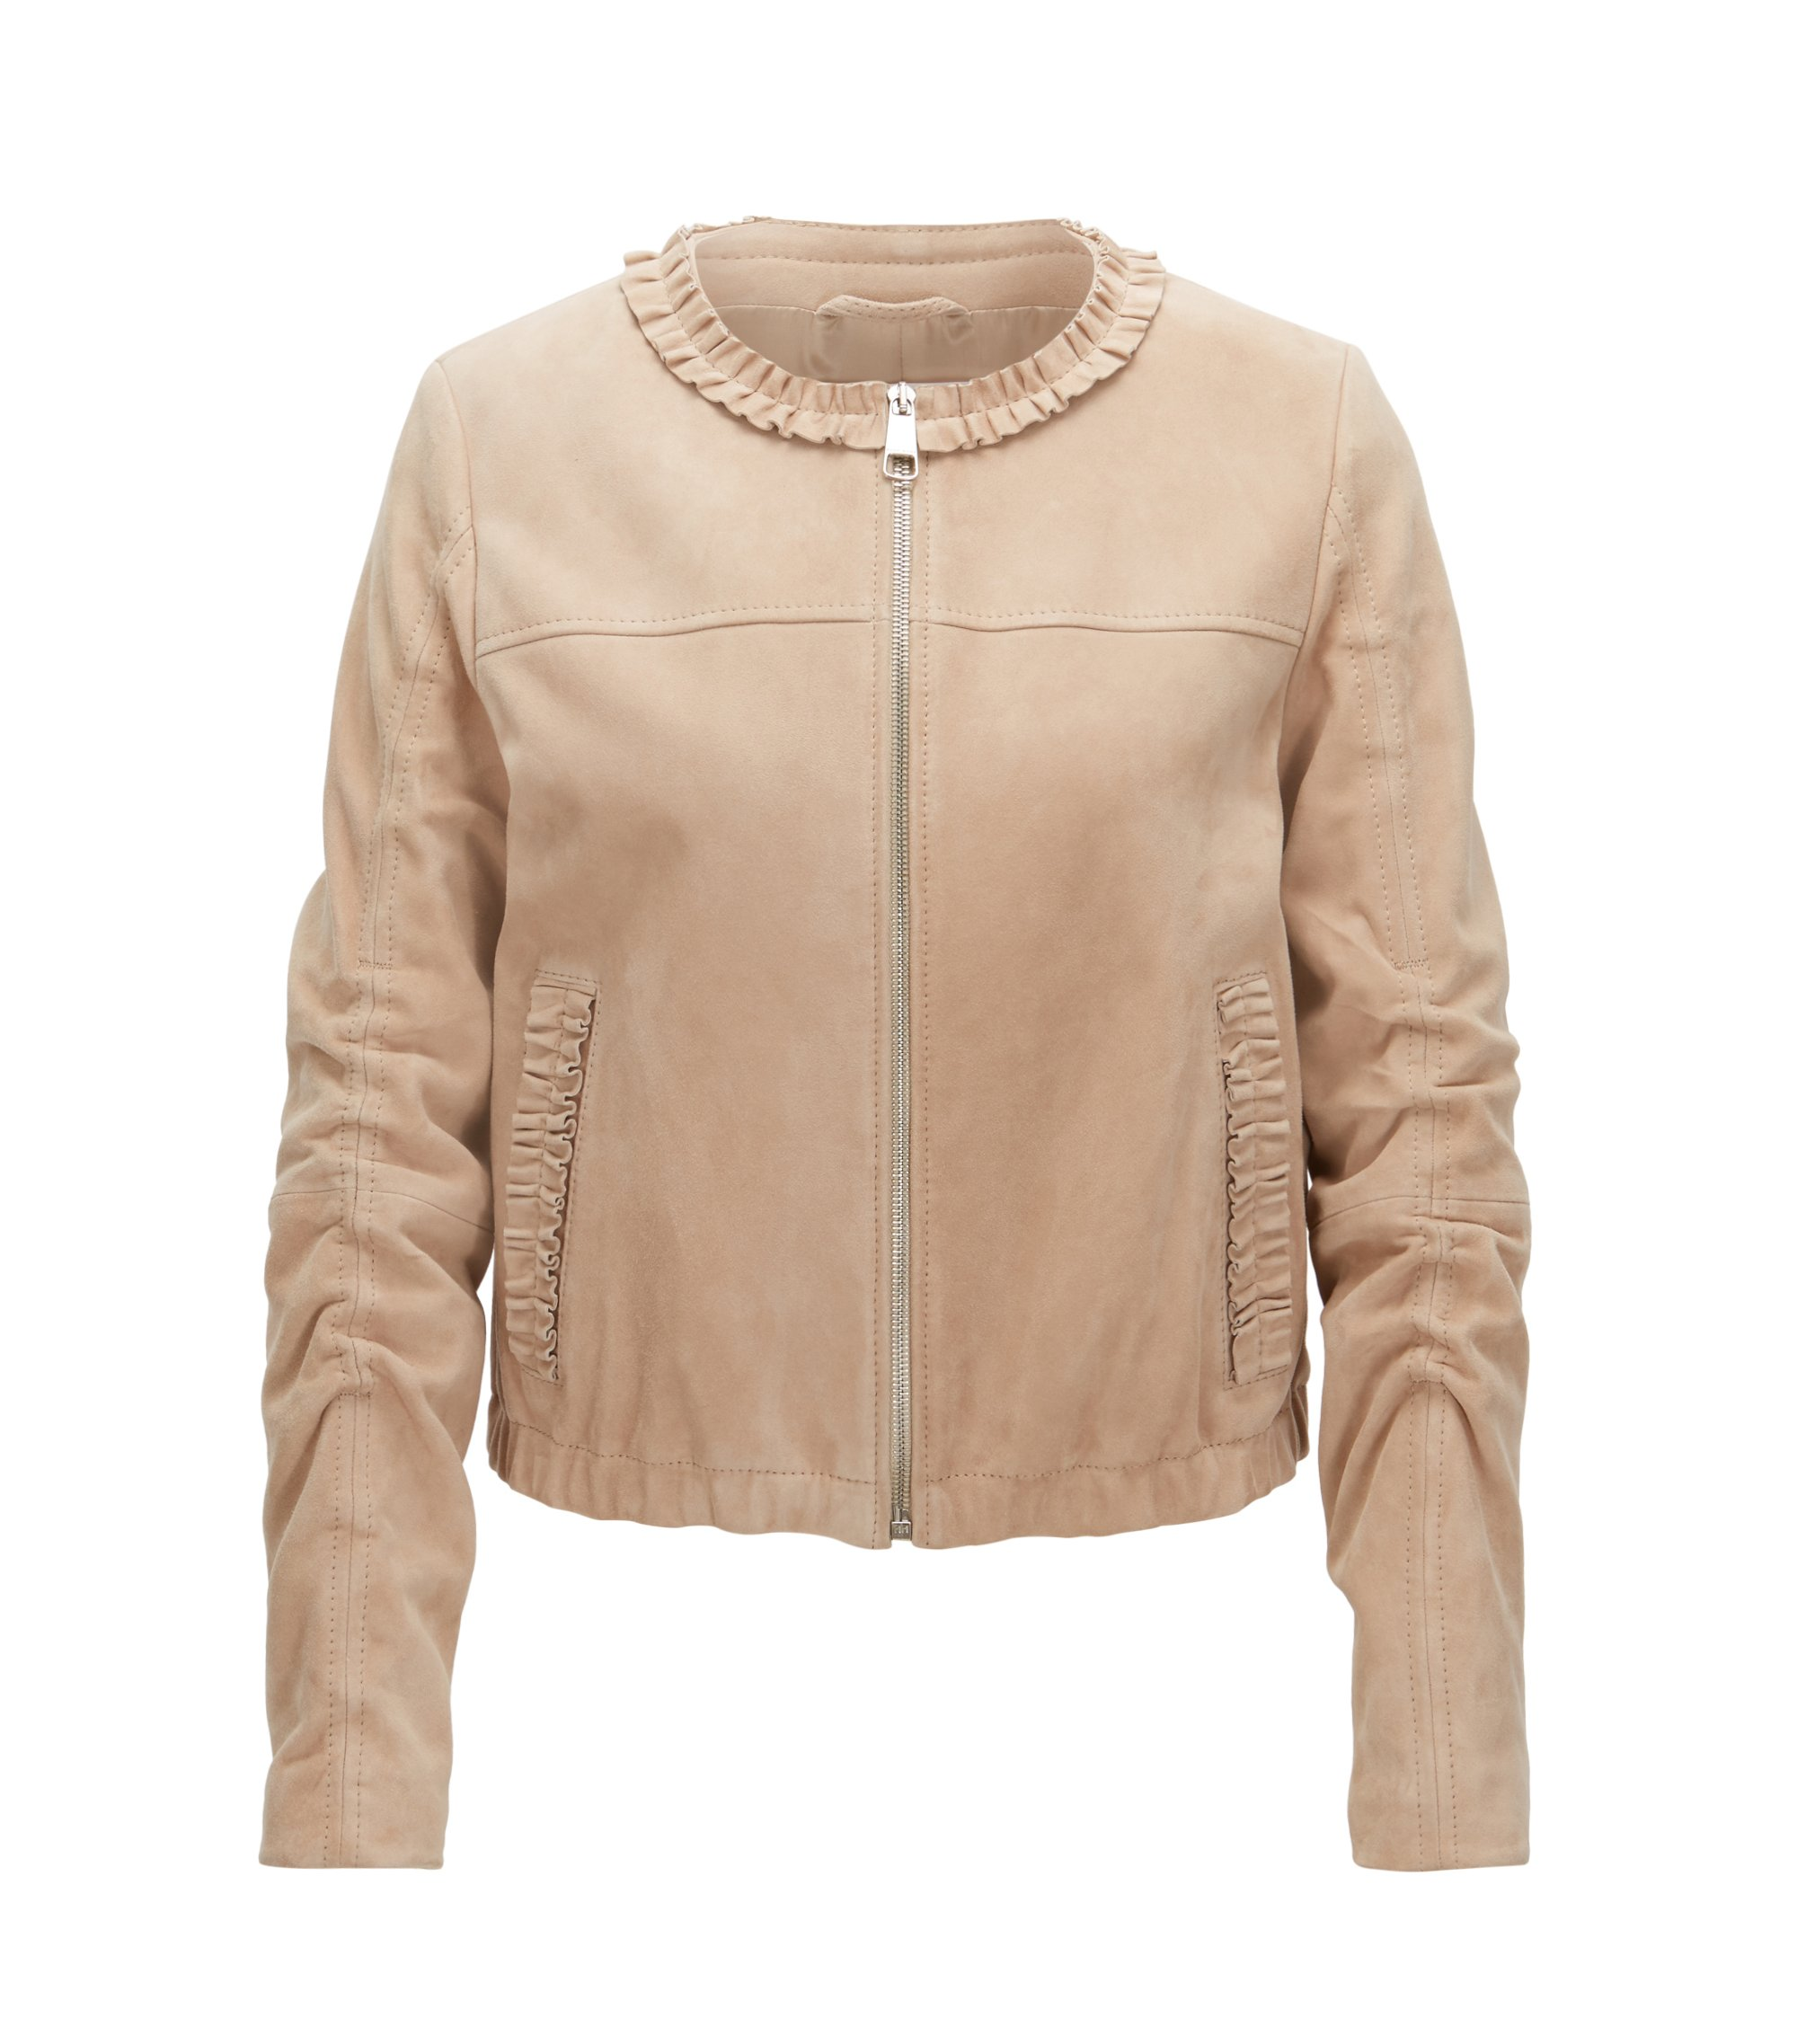 Collarless jacket in soft suede leather, Beige